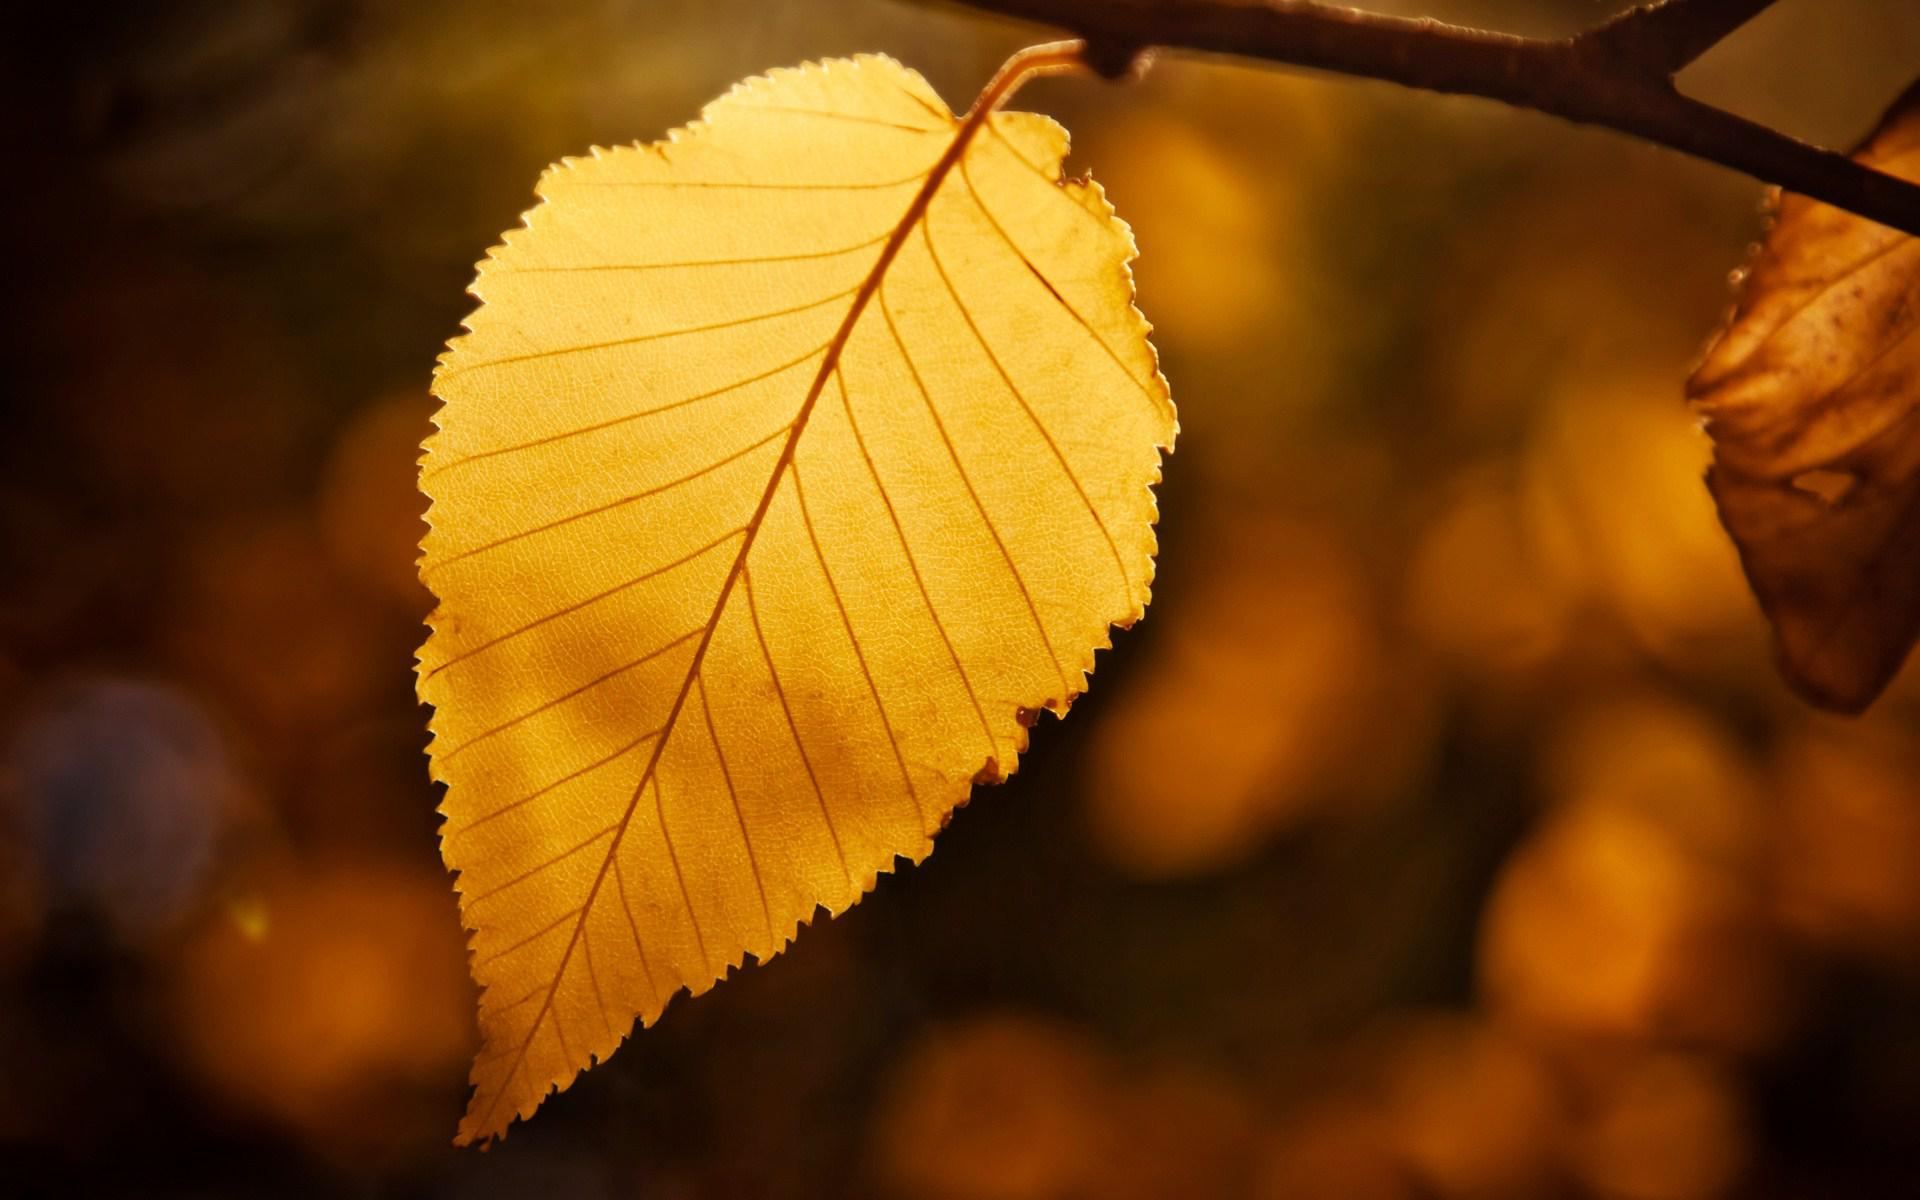 Moving Wallpapers For Girls Hd Golden Leaf Desktop Wallpaper Download Free 139593